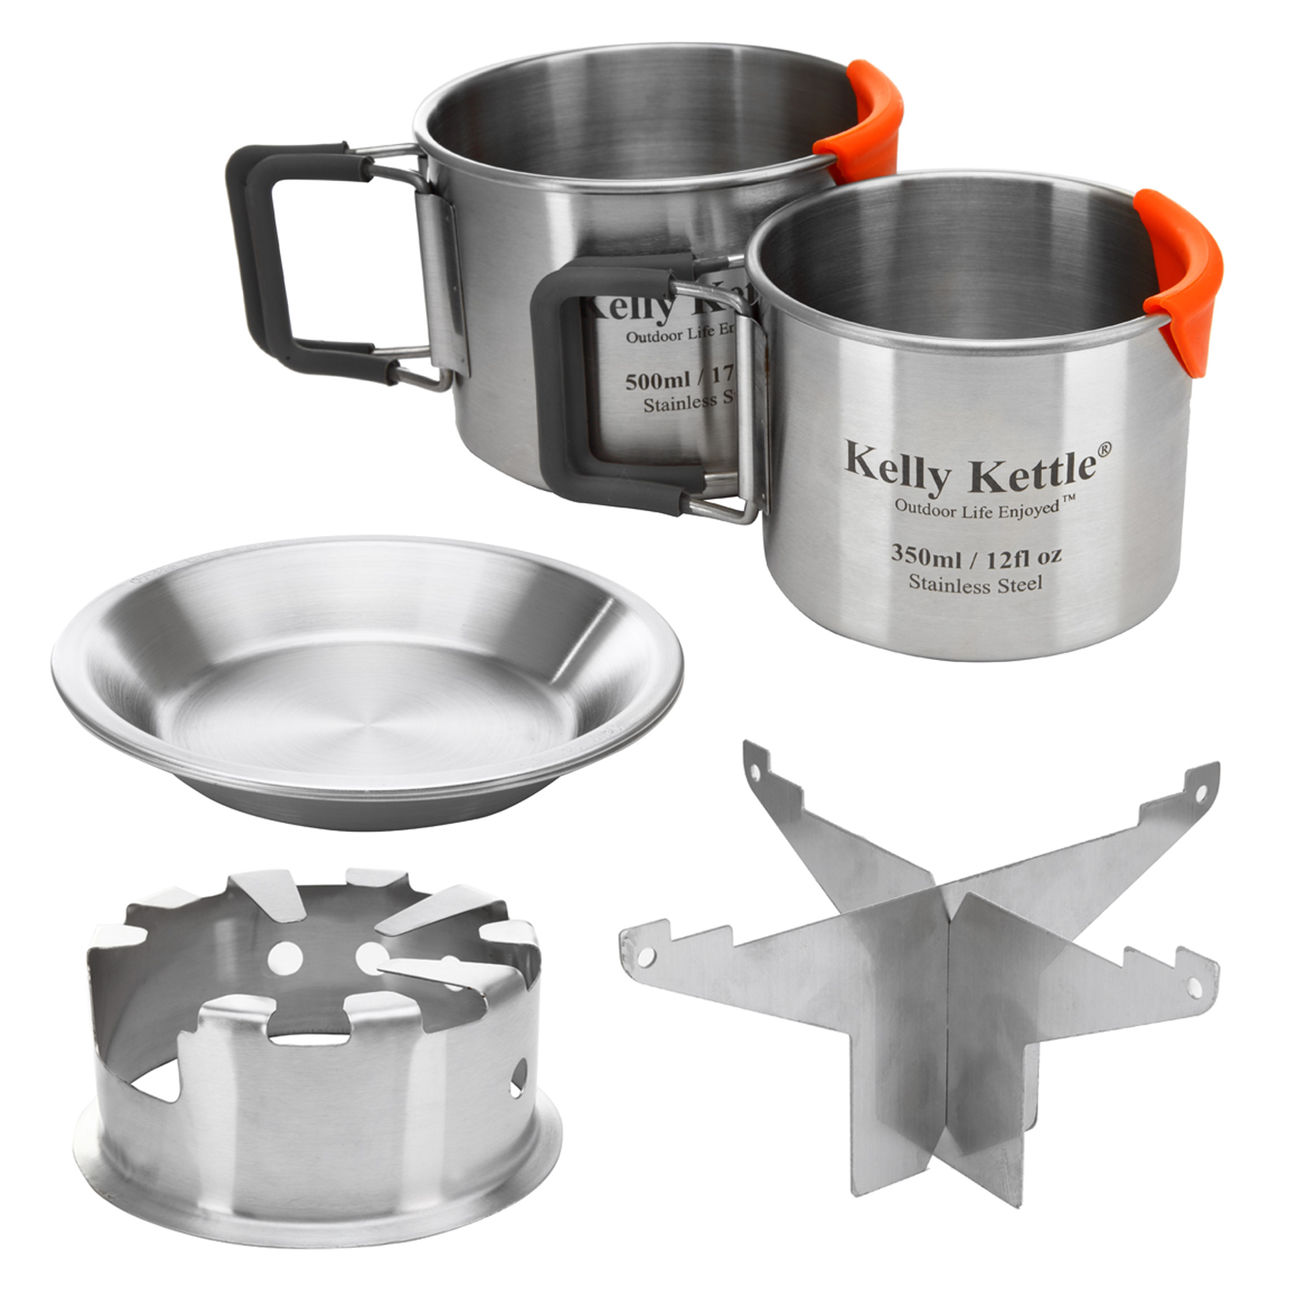 Kelly Kettle Ultimate Base Camp Kit 3